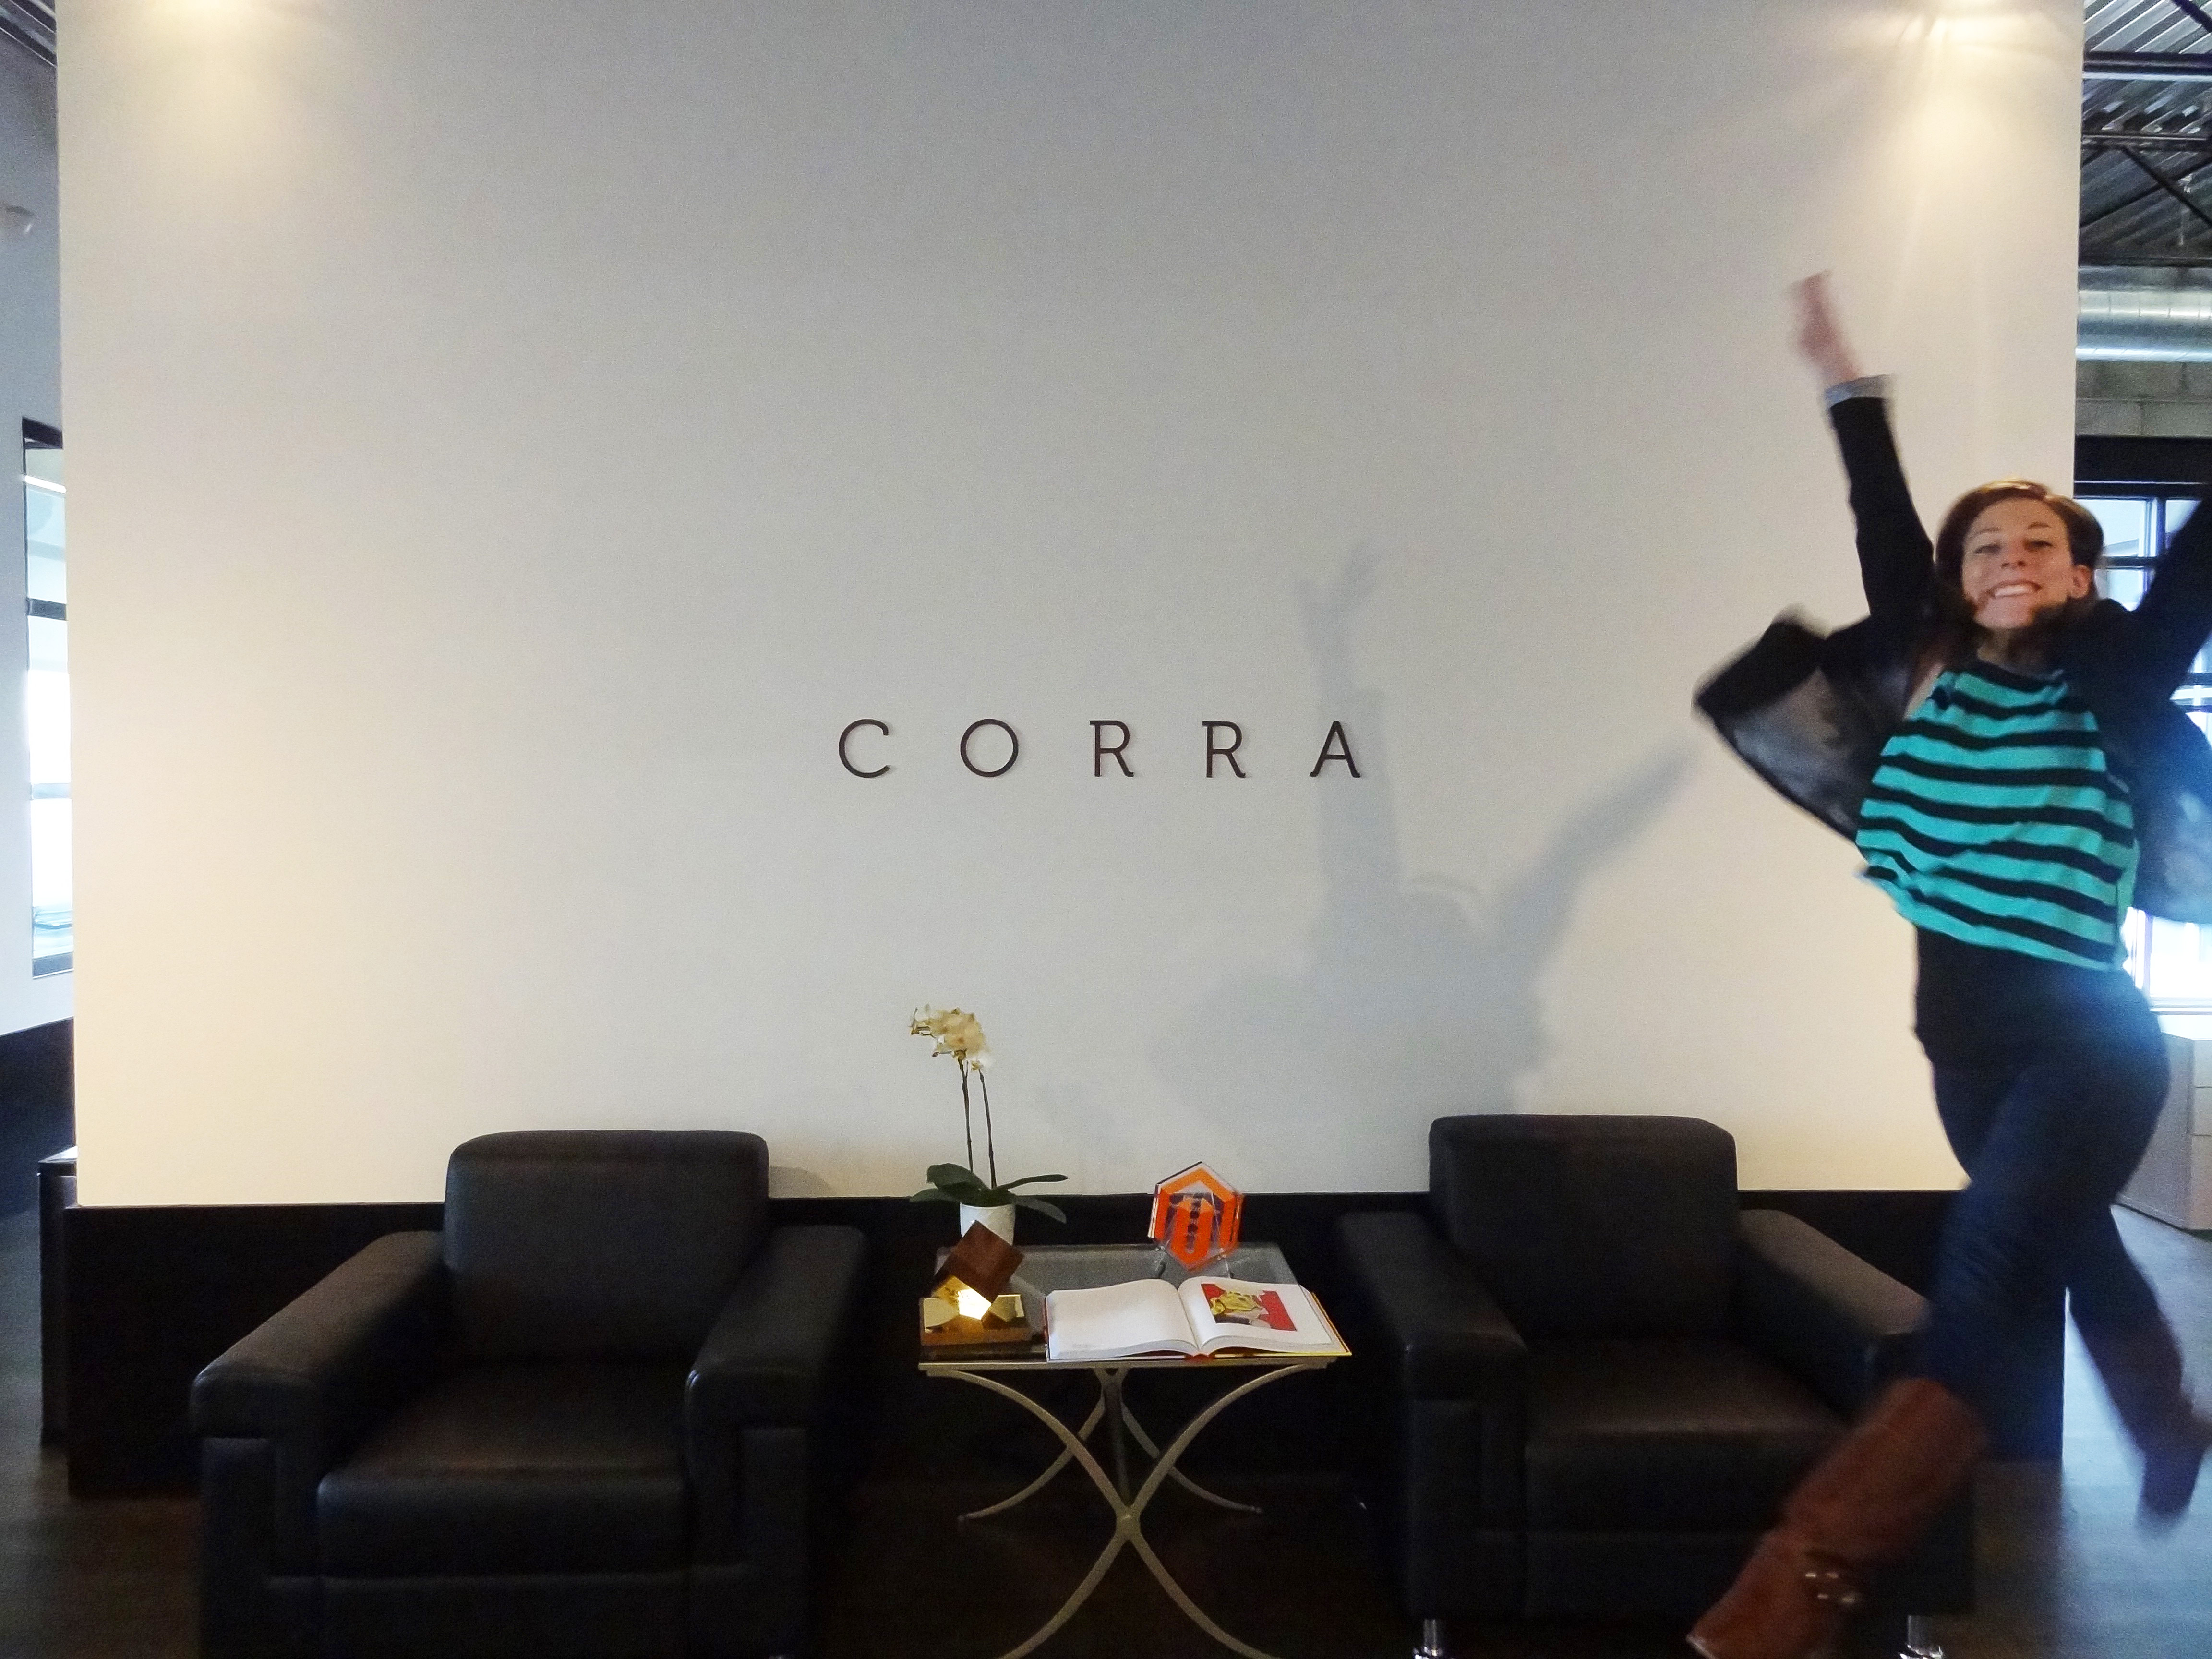 Corra Honored as Best Place to Work by Crain's New York, Number 40